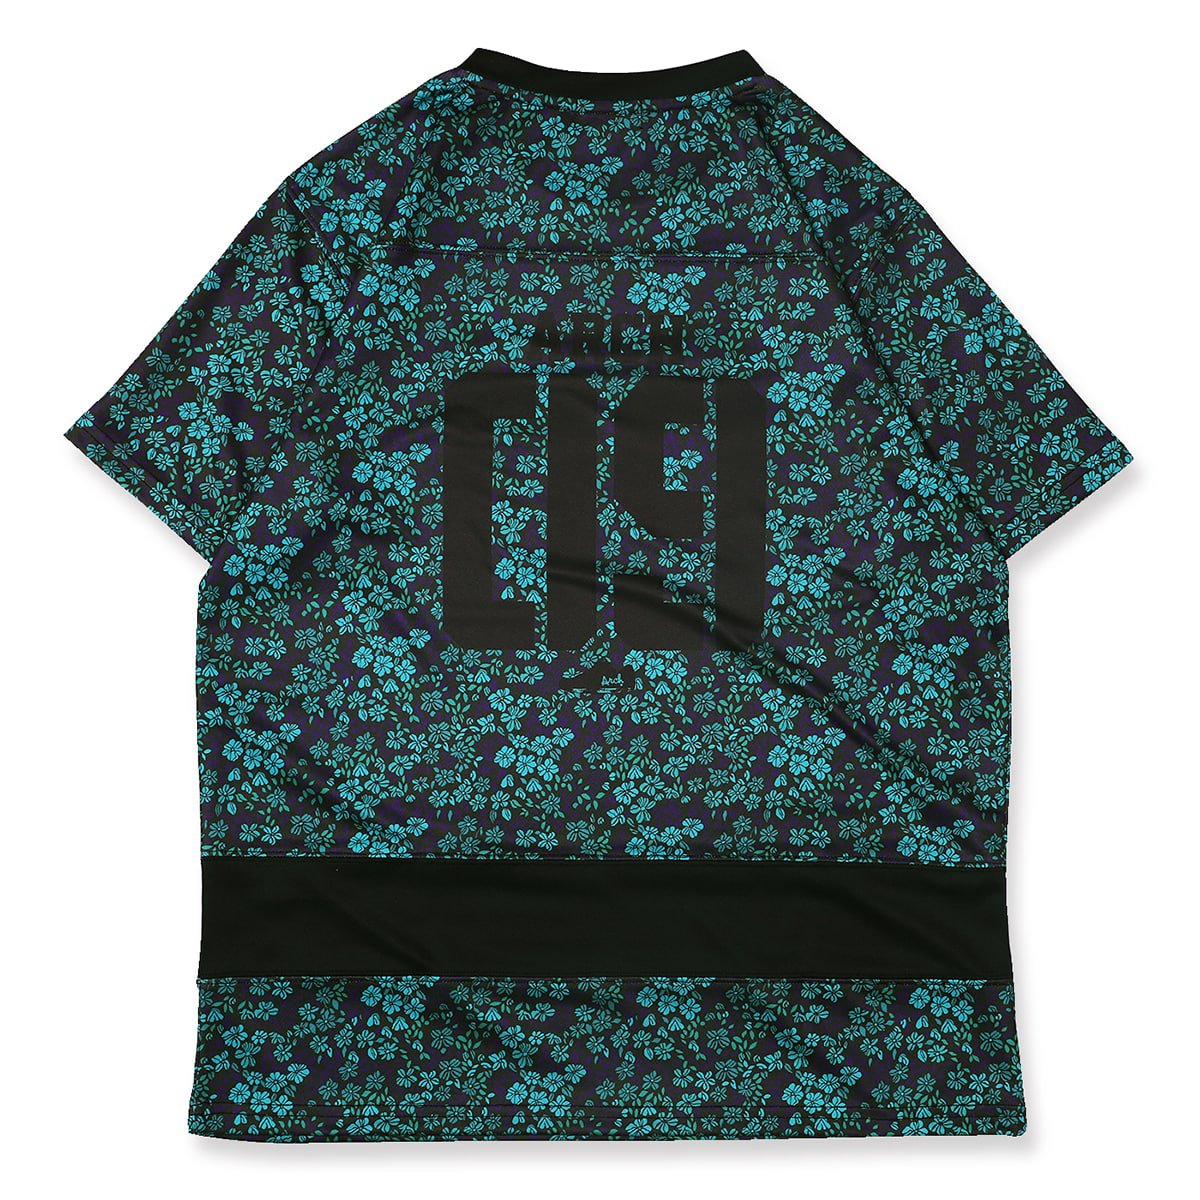 bloom 09 tee [DRY]【teal】